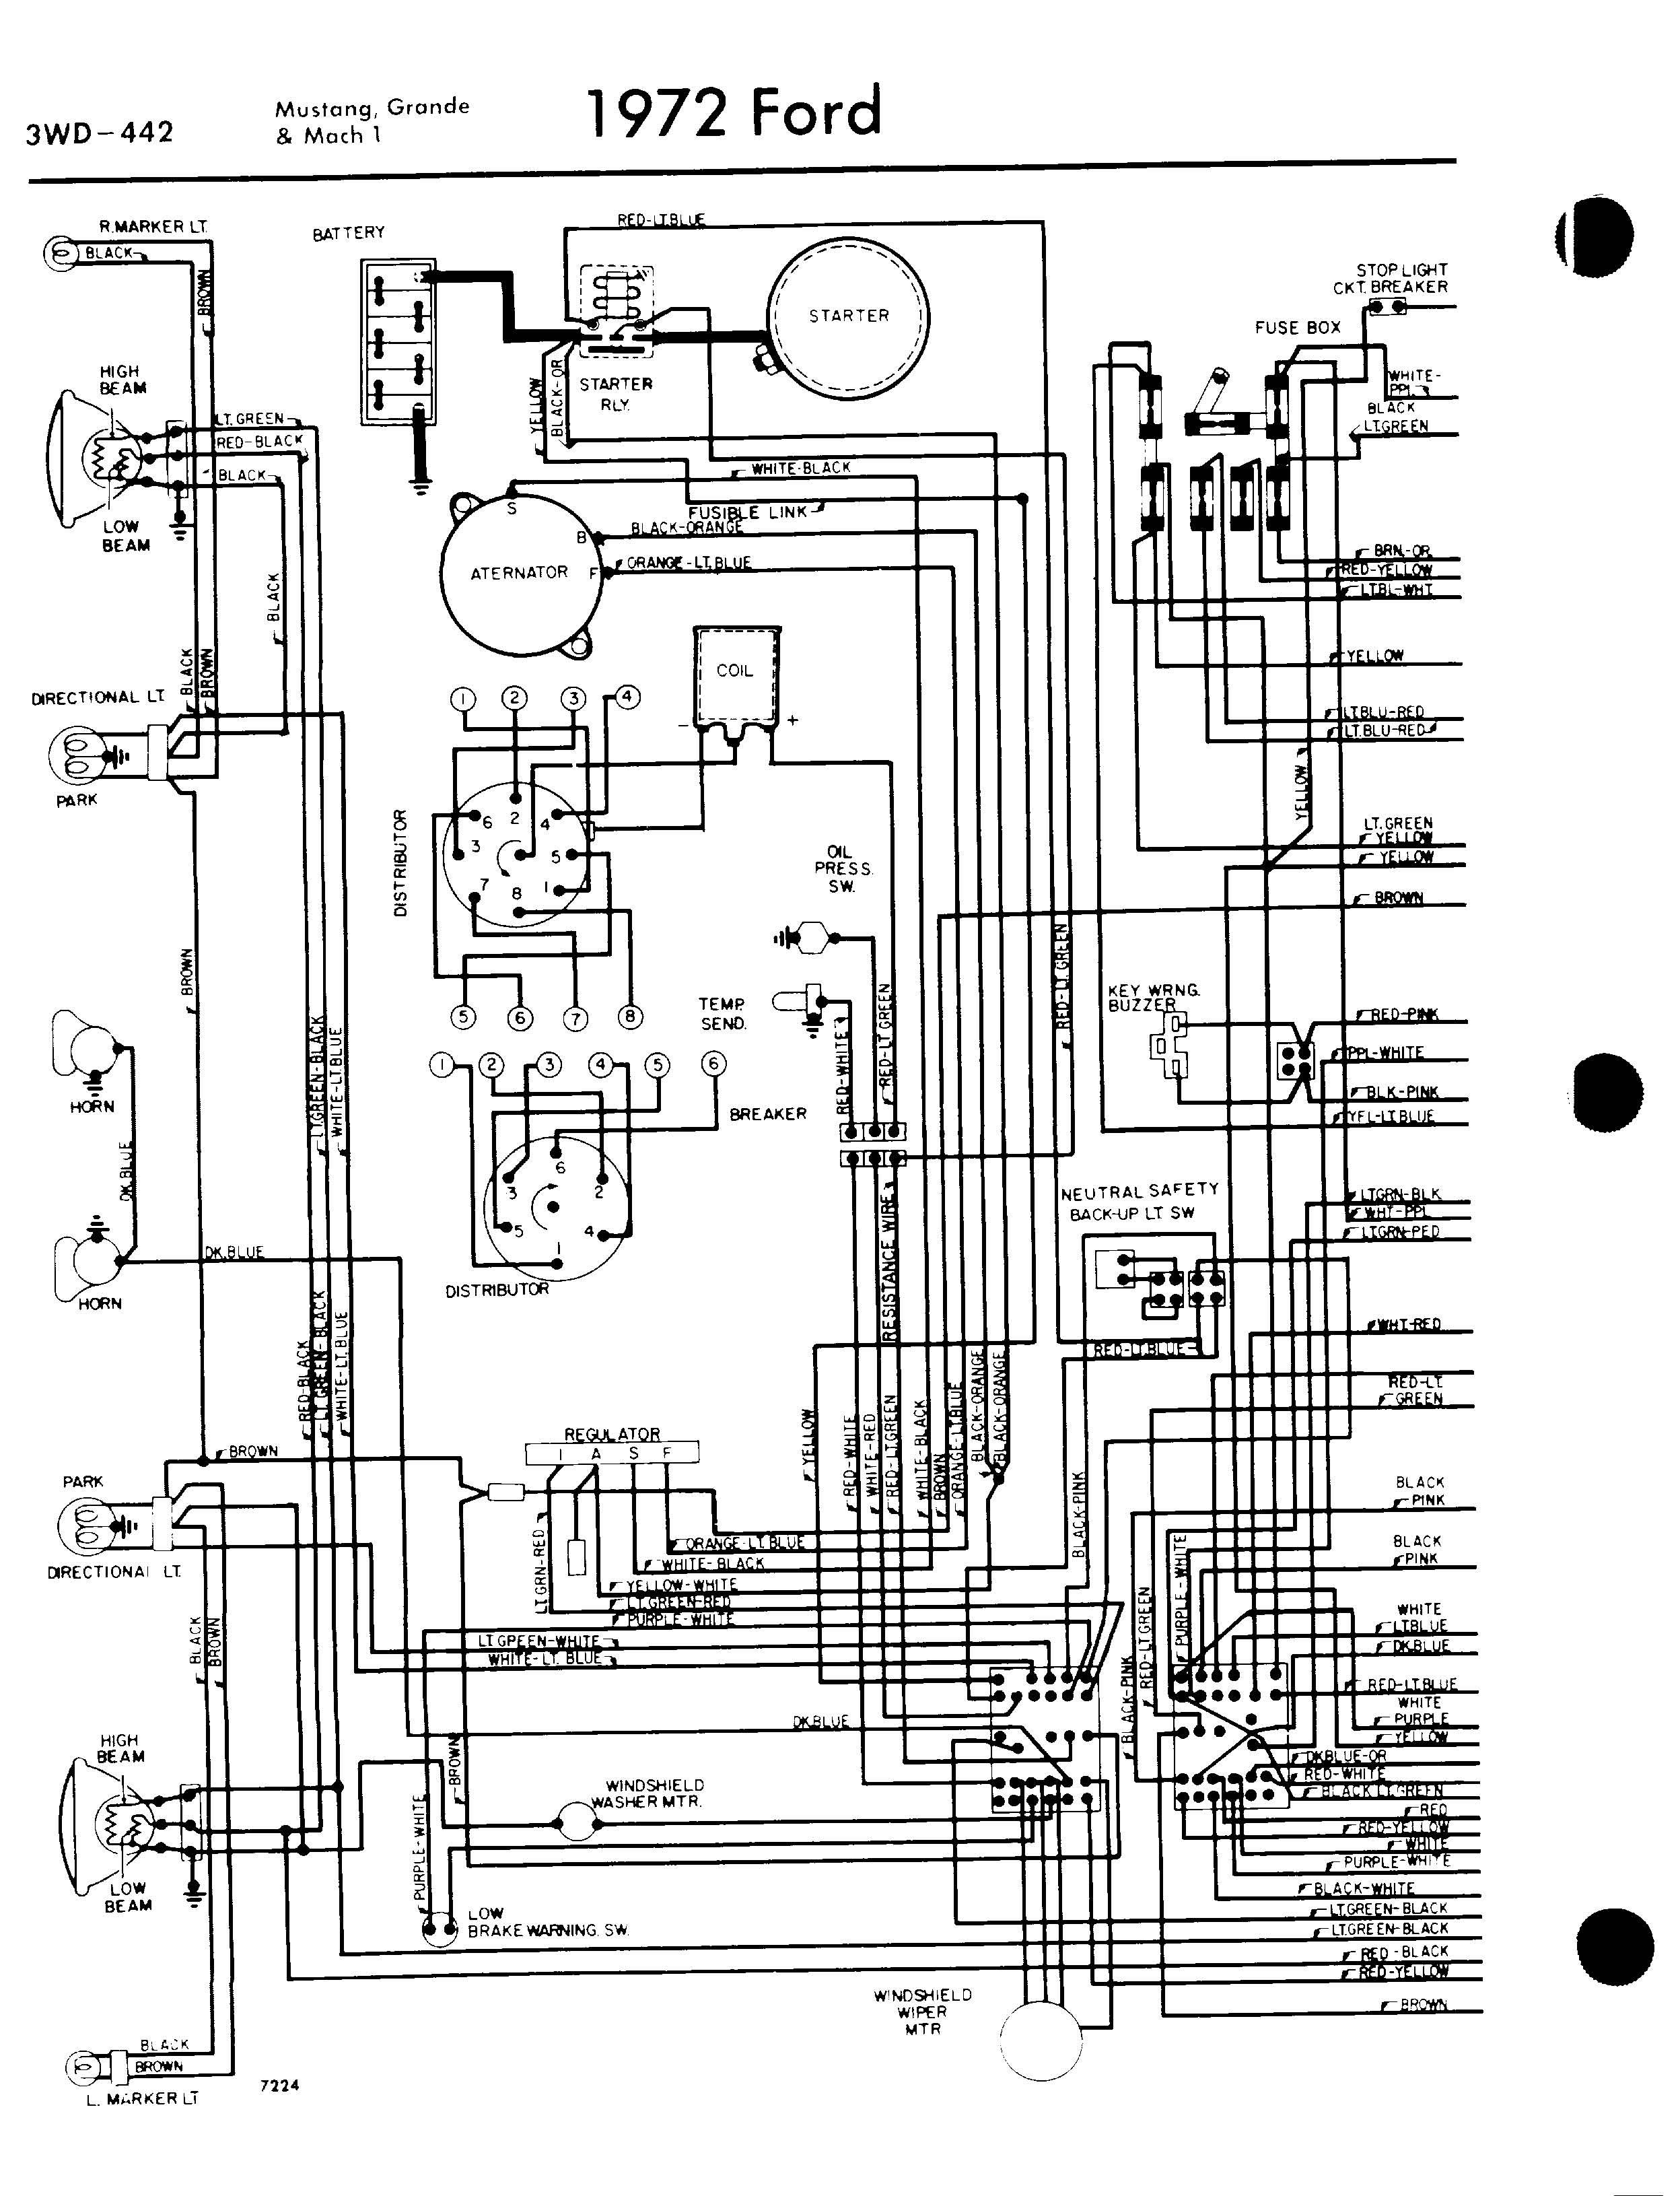 1969 mercury wire diagrams wiring diagram blog1969 mercury cyclone wiring diagram wiring diagram 1968 mercury cyclone [ 2496 x 3262 Pixel ]